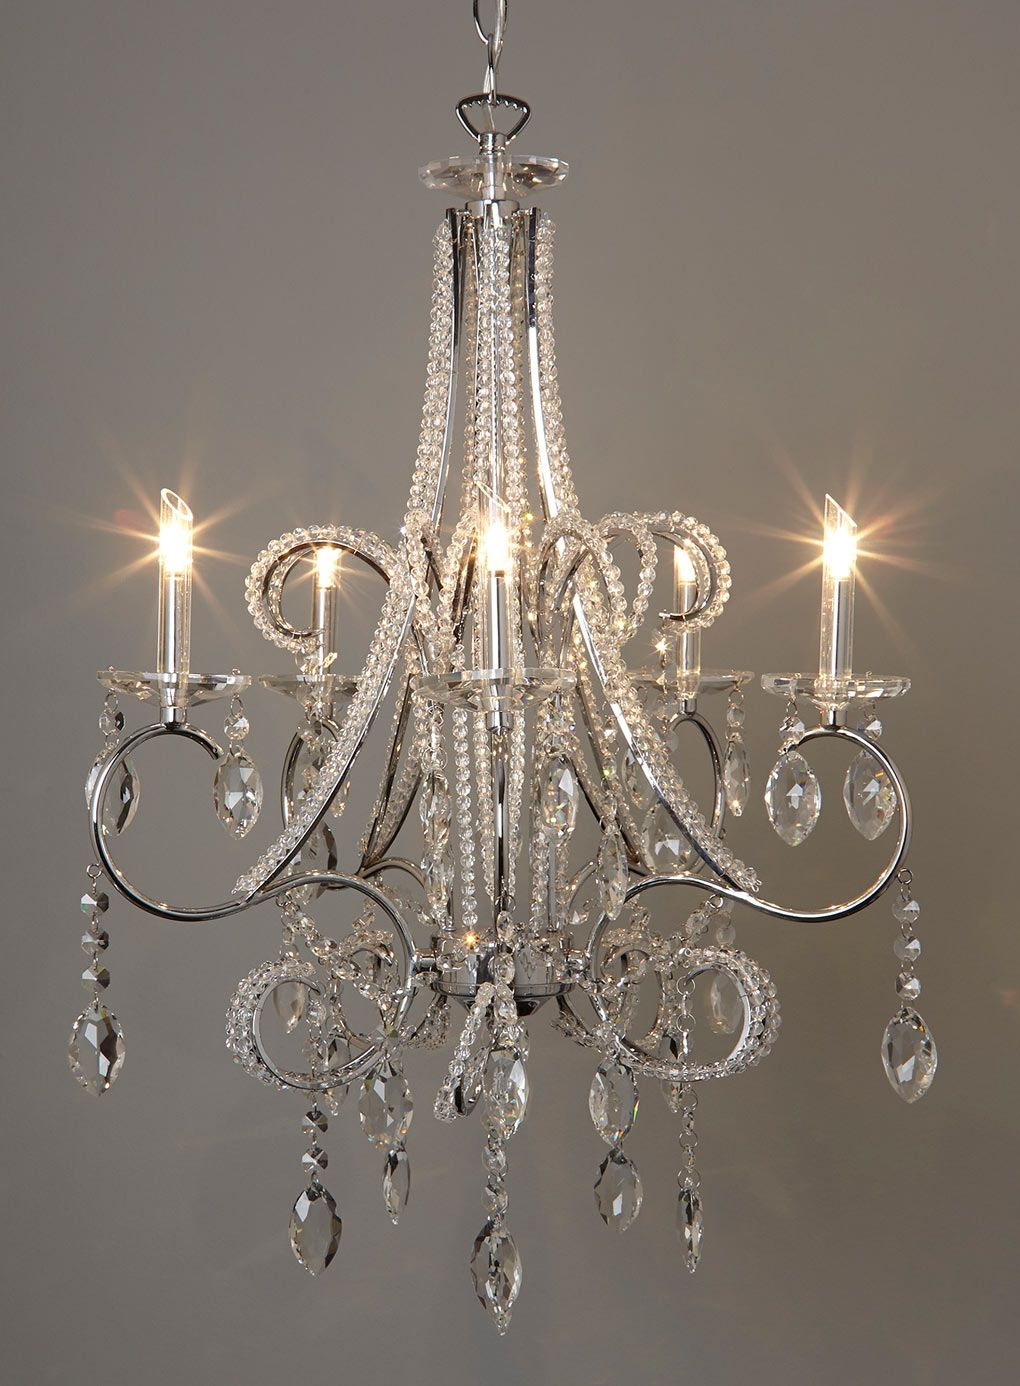 Isadora beaded chandelier ceiling lights all lighting home isadora beaded chandelier ceiling lights all lighting home lighting furniture mozeypictures Image collections